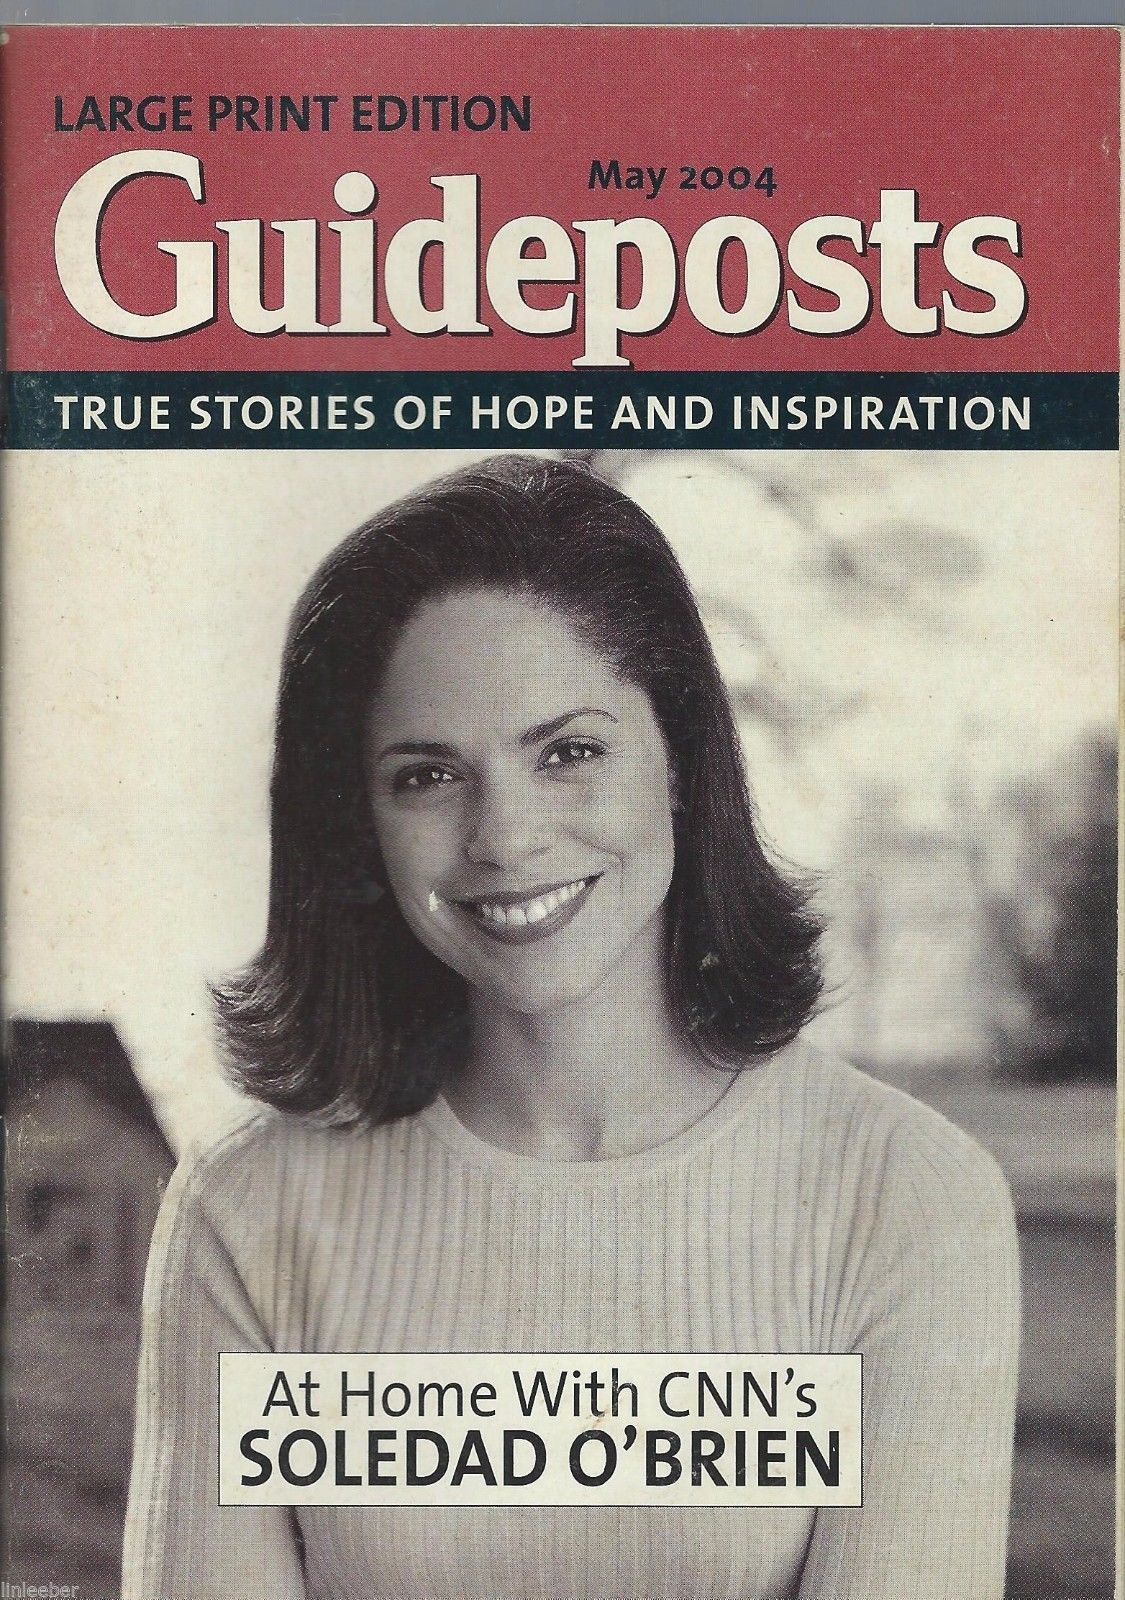 9) GUIDEPOSTS-TRUE STORIES OF HOPE AND INSPIRATION;Large Print Edition; 2004